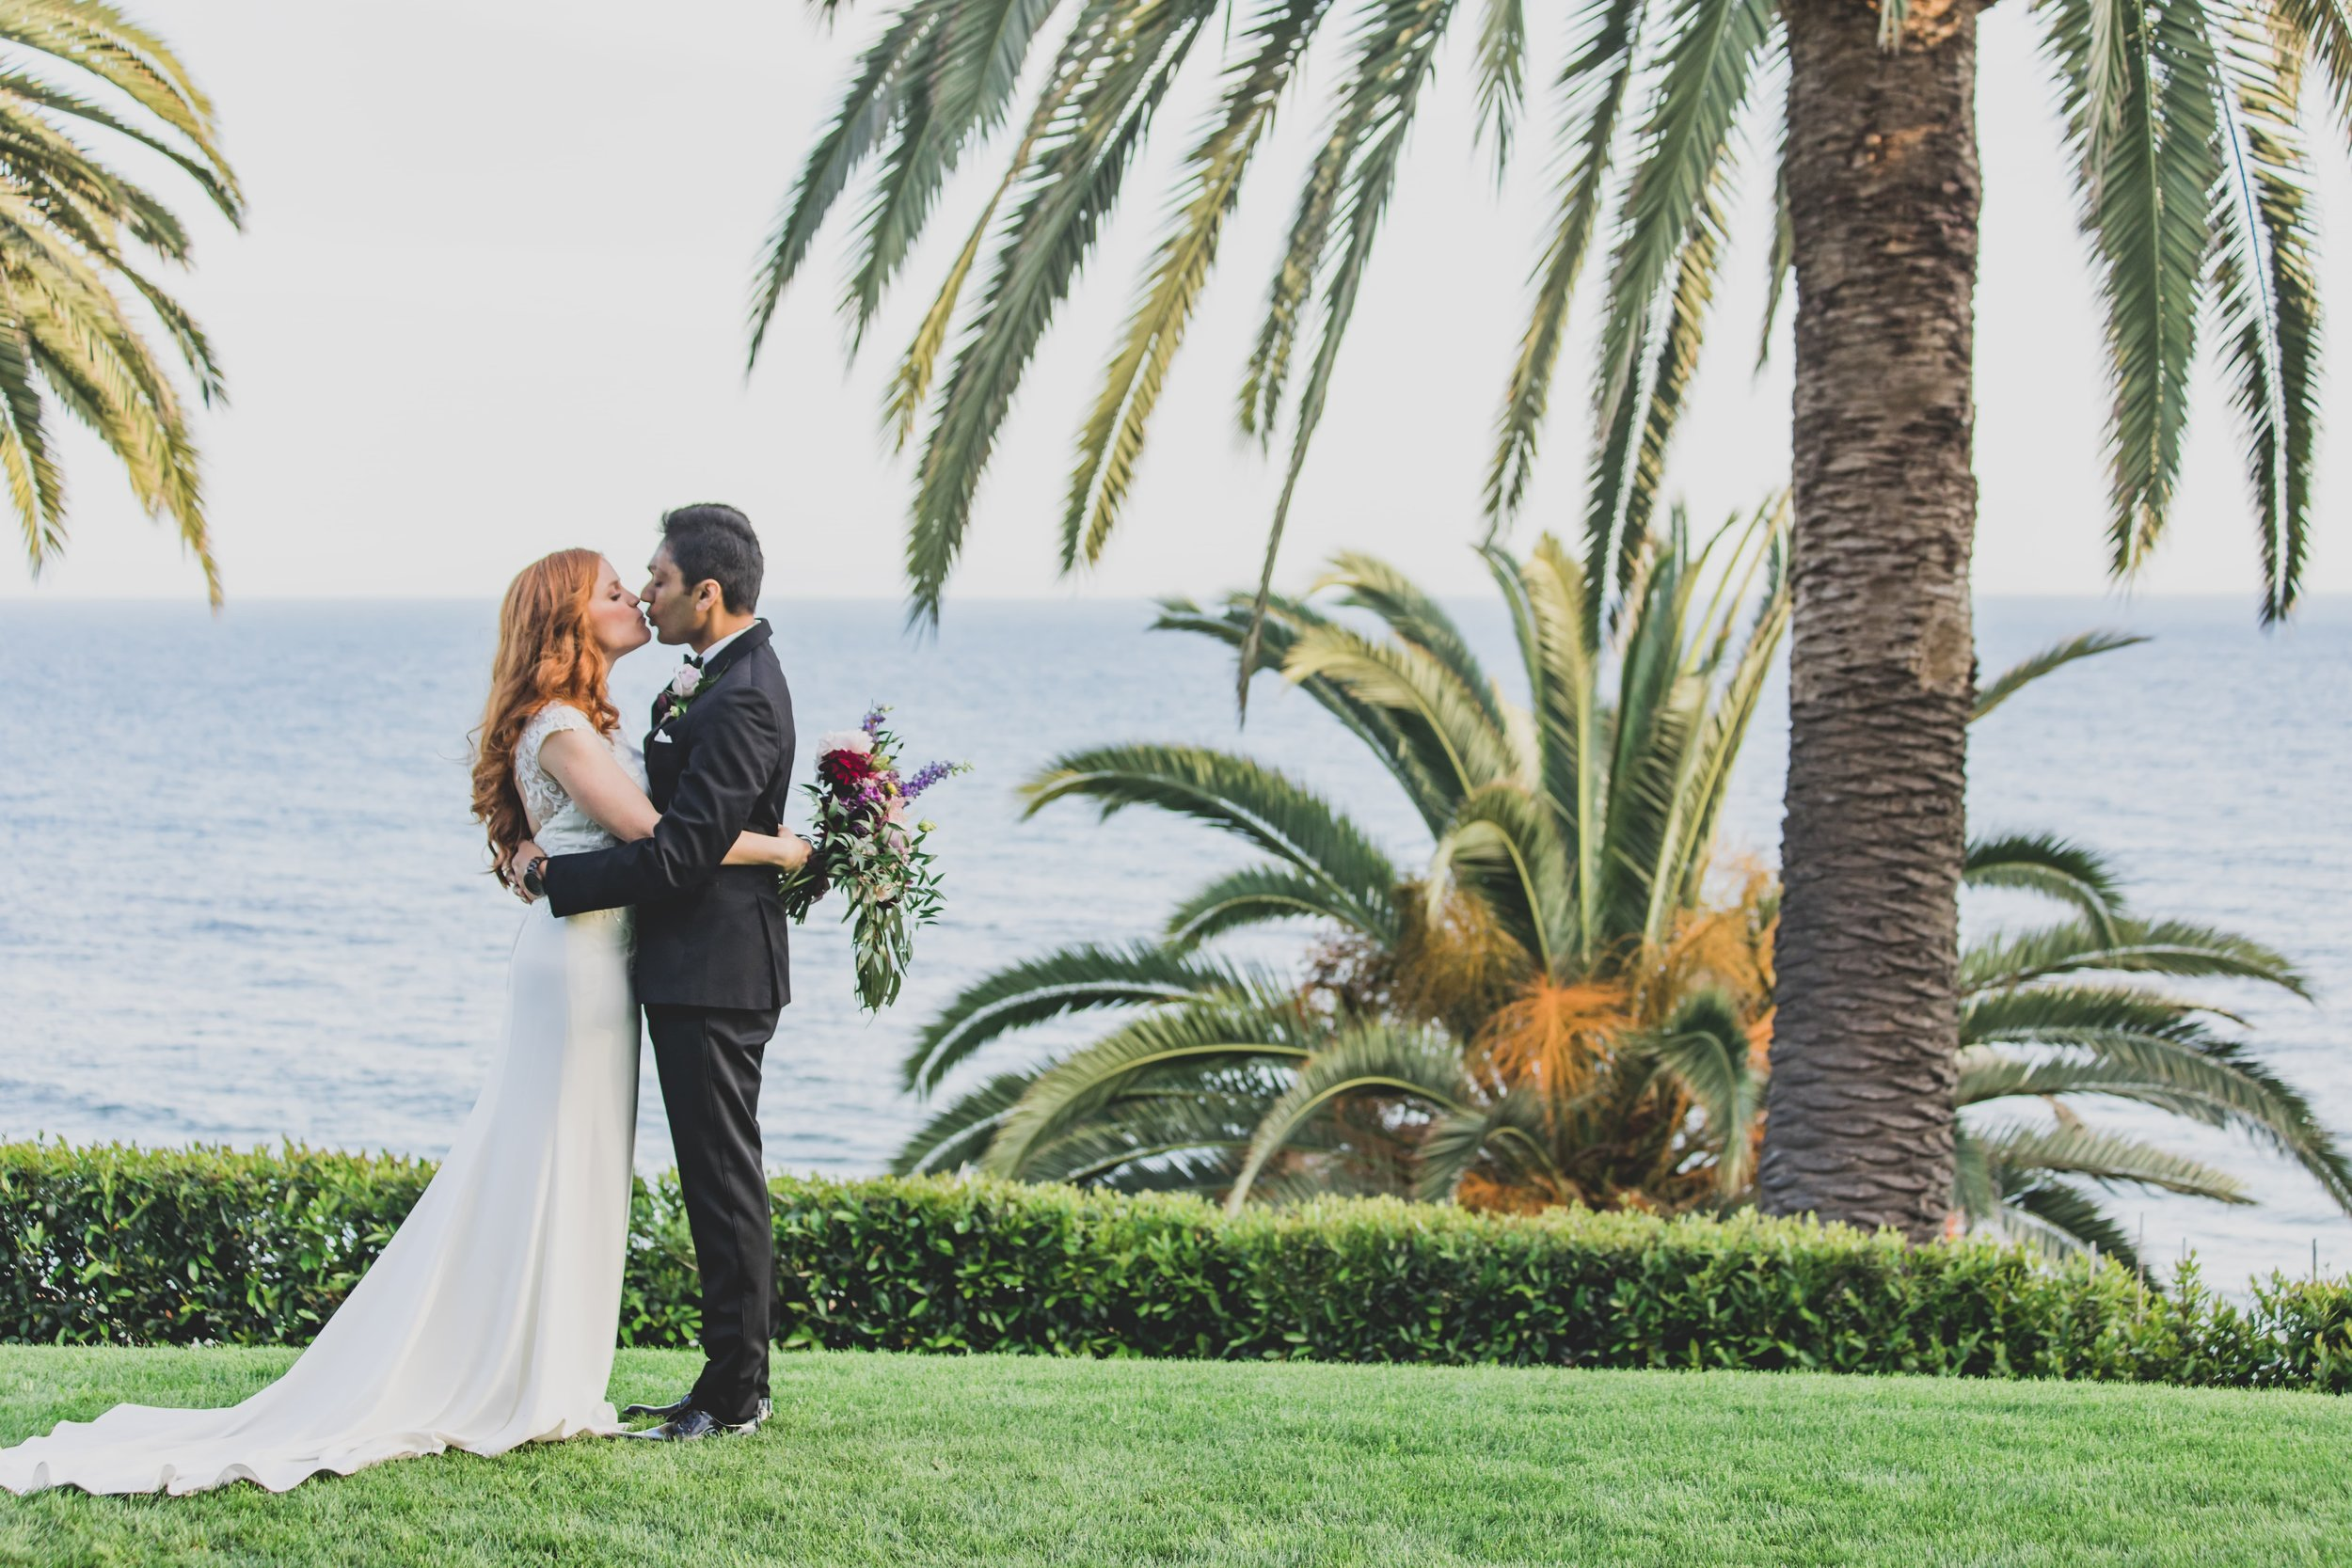 Wedding Photography - Pacific Palisades, CA - Bel Air Bay Club - Bride and groom kissing on a grassy enclosure, with palm trees in the background and the ocean behind them.